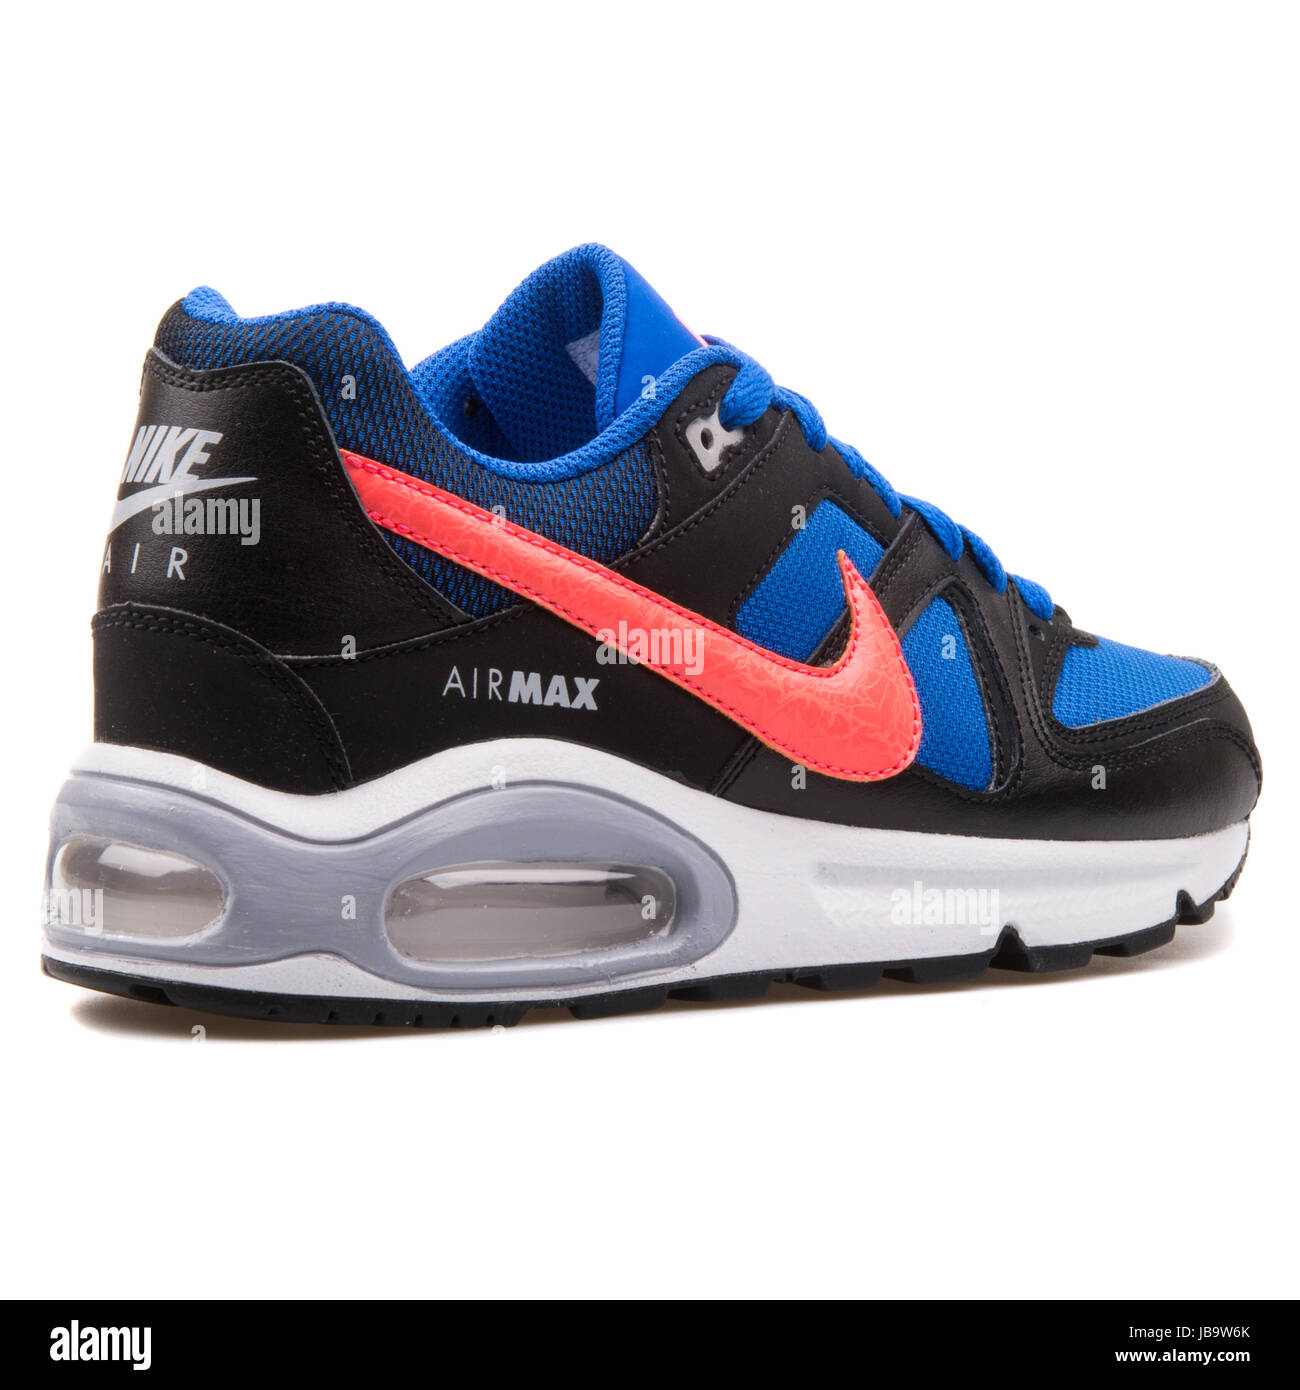 Nike Air Max Command (GS) Blue, Black and Red Youth's